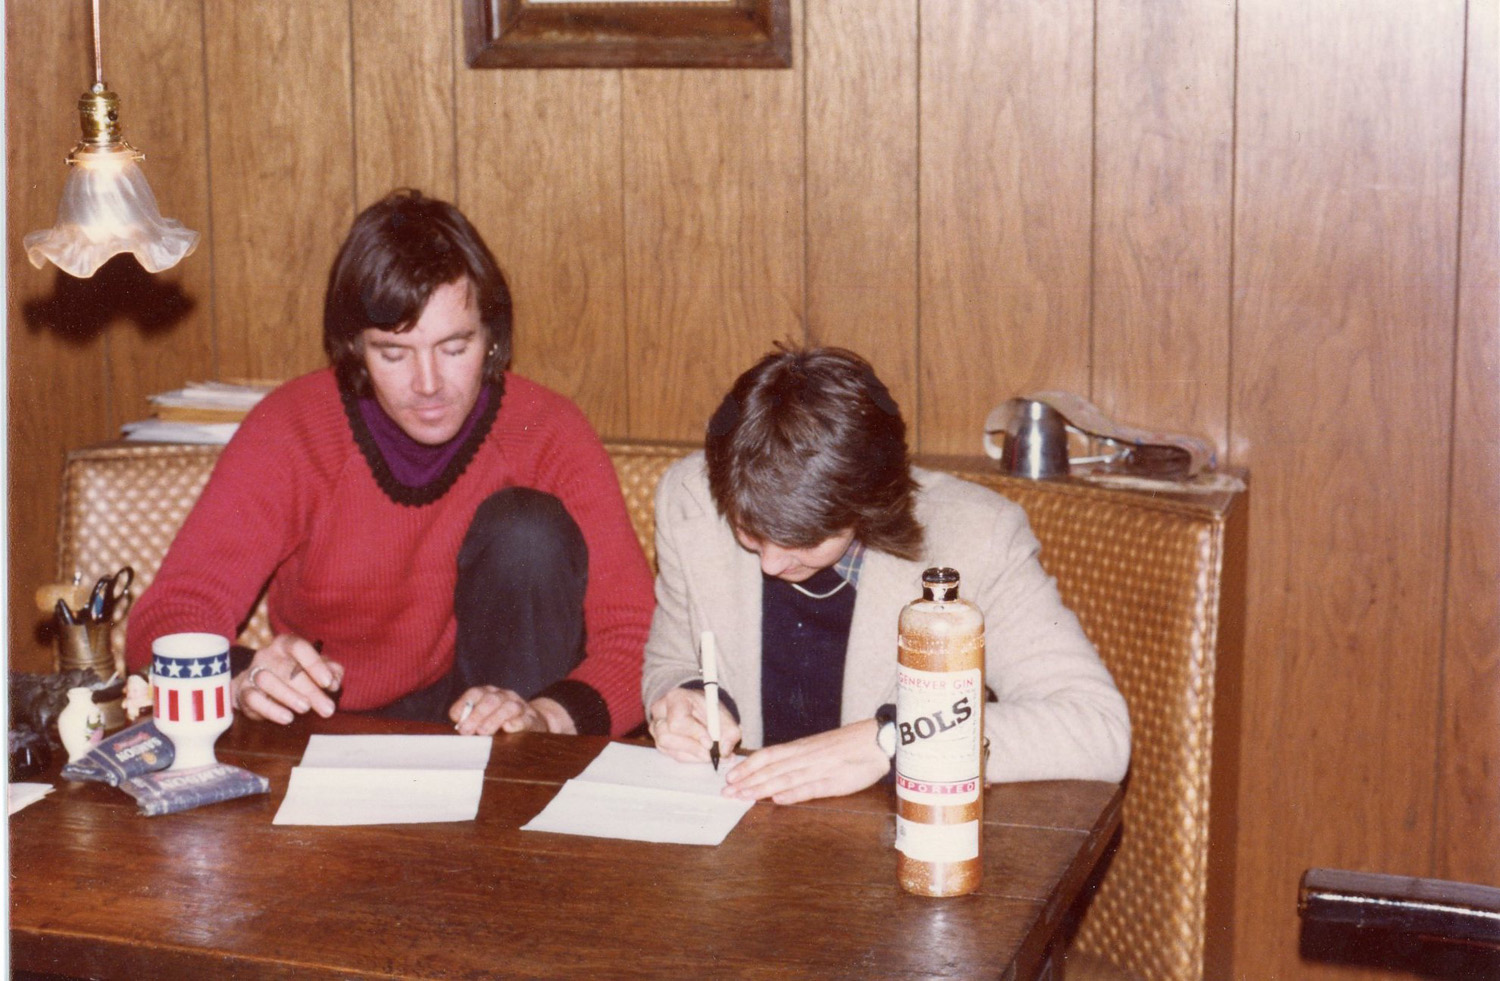 Bettie and her bother-in-law, Peter, signing the purchase agreement for the houseboat in Amsterdam, 1979.